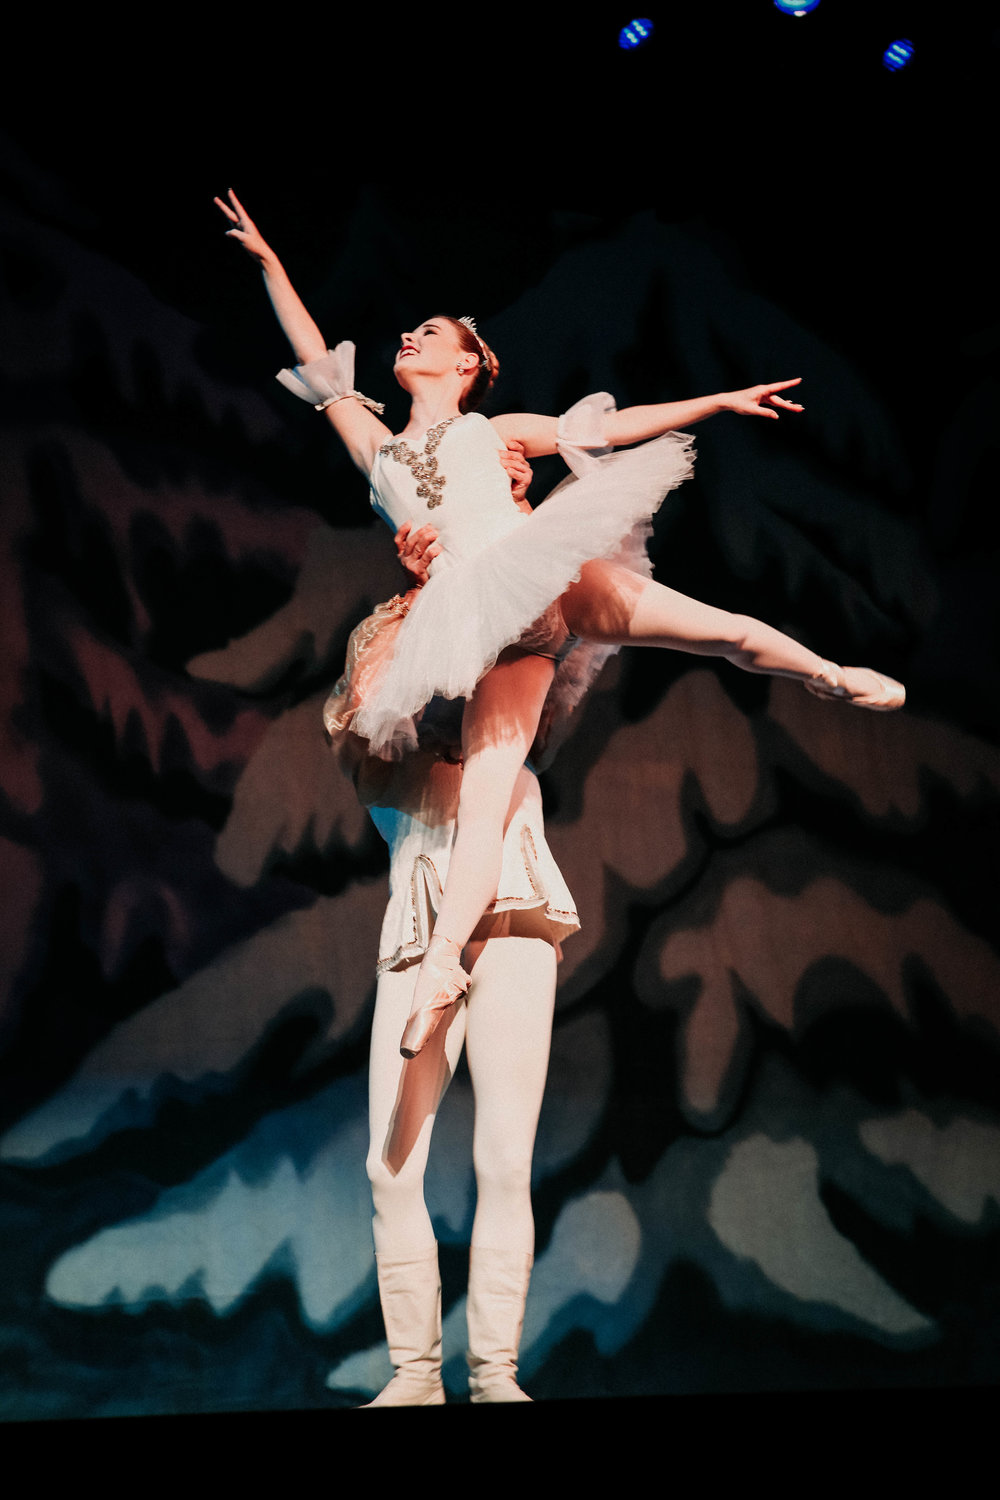 nutcracker17 (13 of 64).jpg